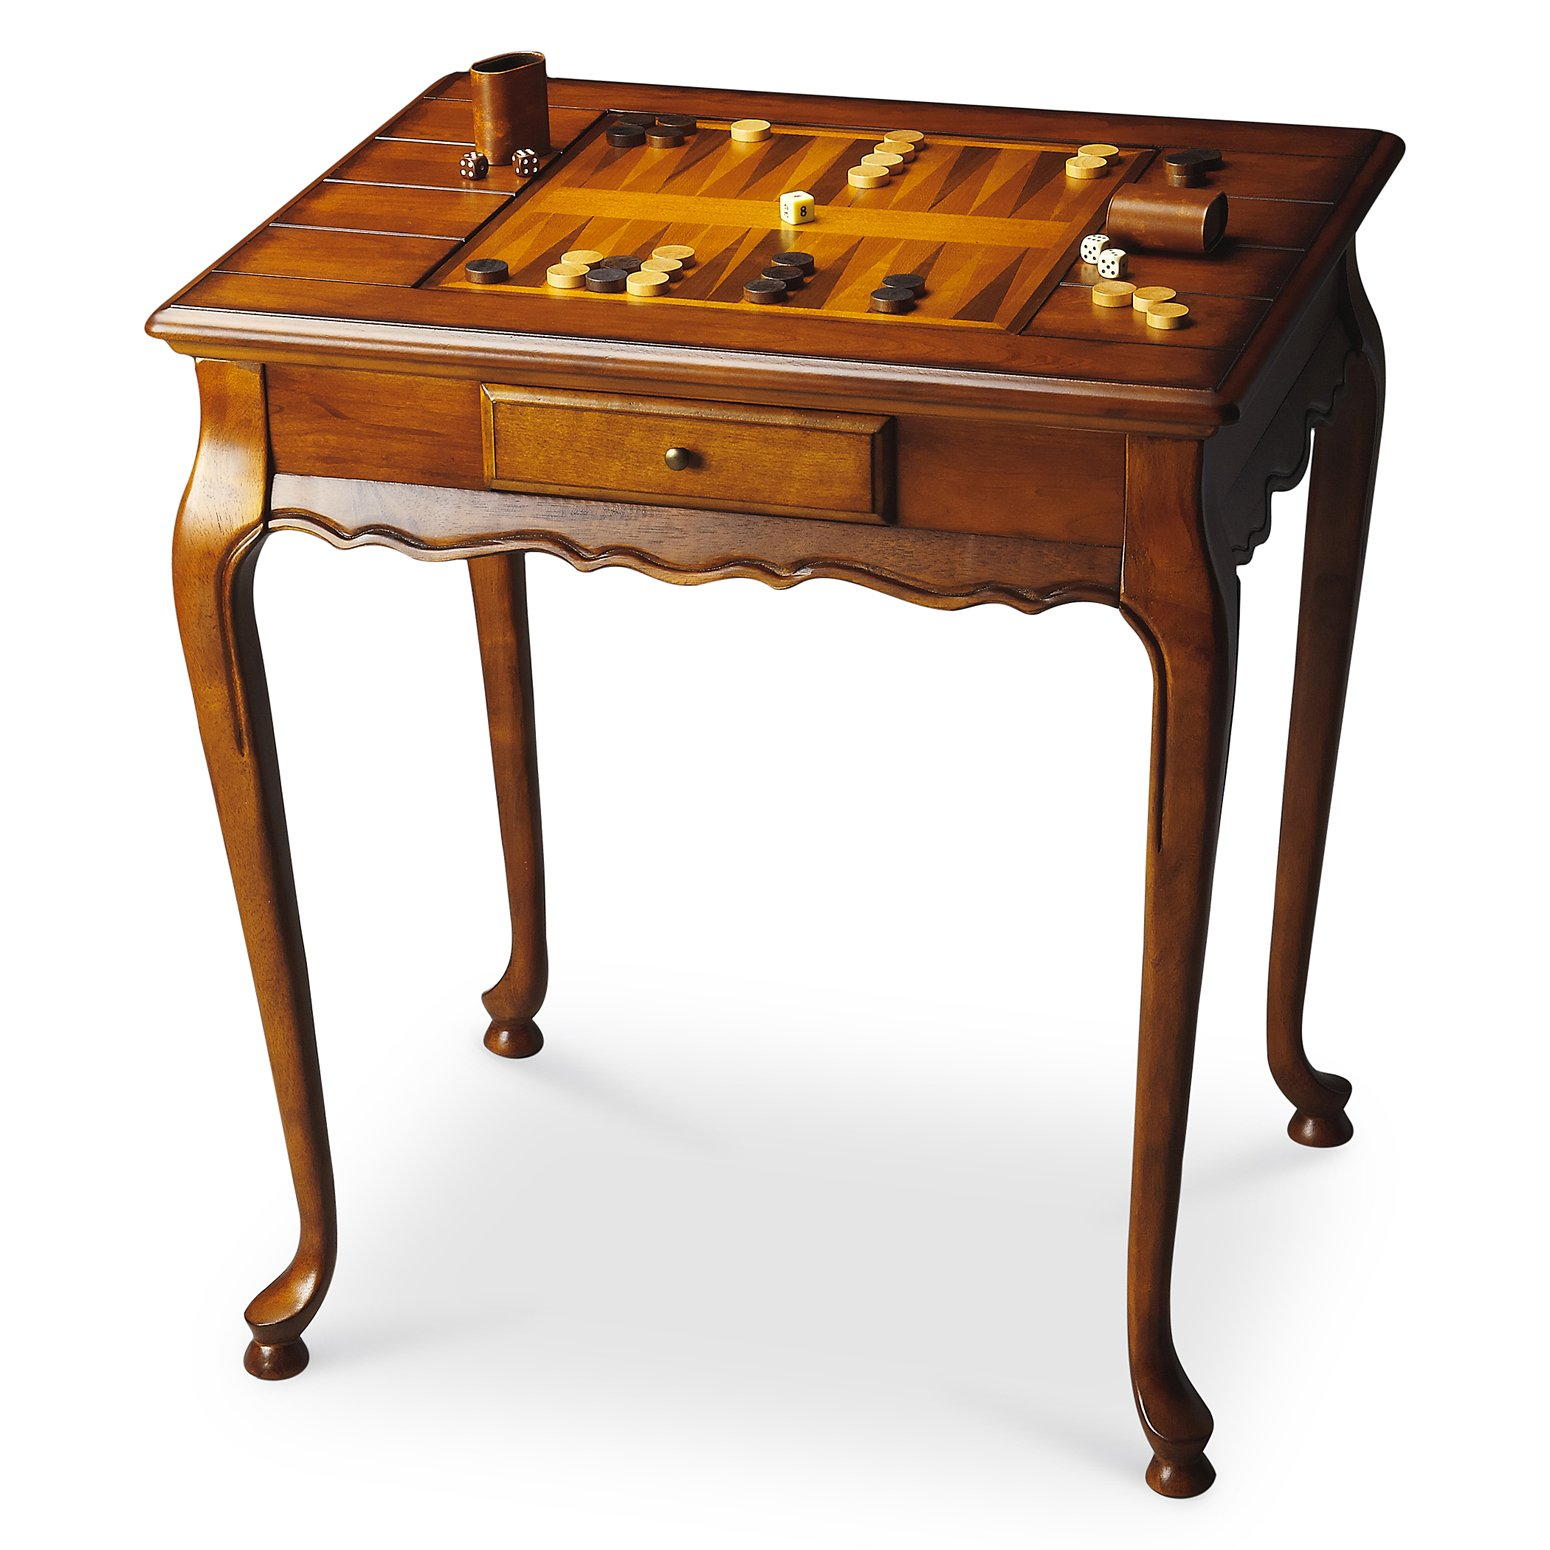 Tables - Wellington Game Table - Olive Ash Burl - Chess - Checkers - Backgammon - Accent Furniture by Kensington Row Furniture Collection